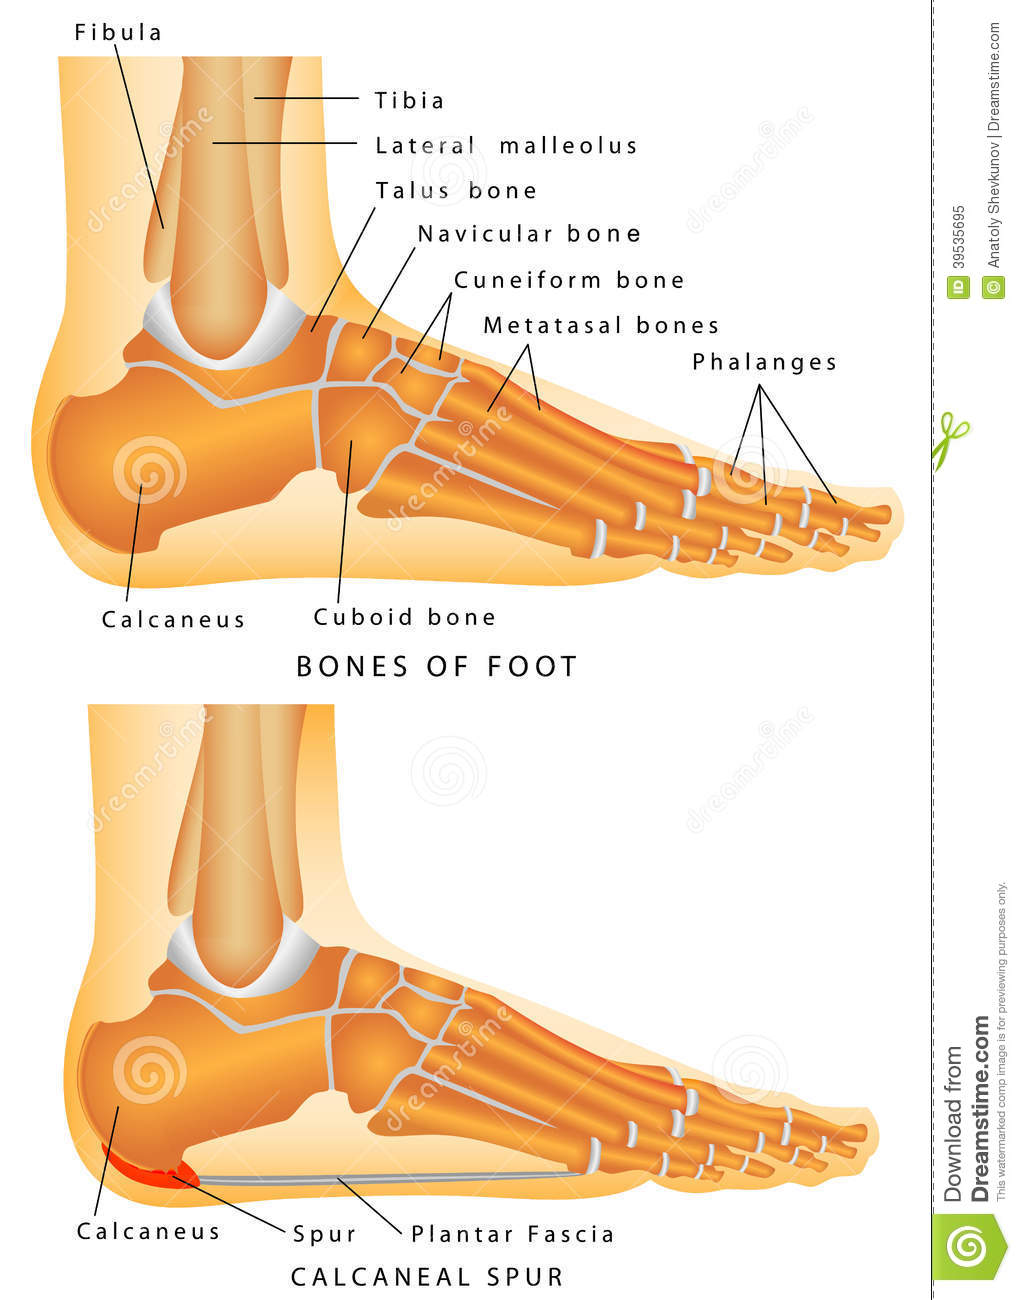 Heel Spur. Bones of the Foot and Ankle. Calcaneal spur. Calcaneal spur ...